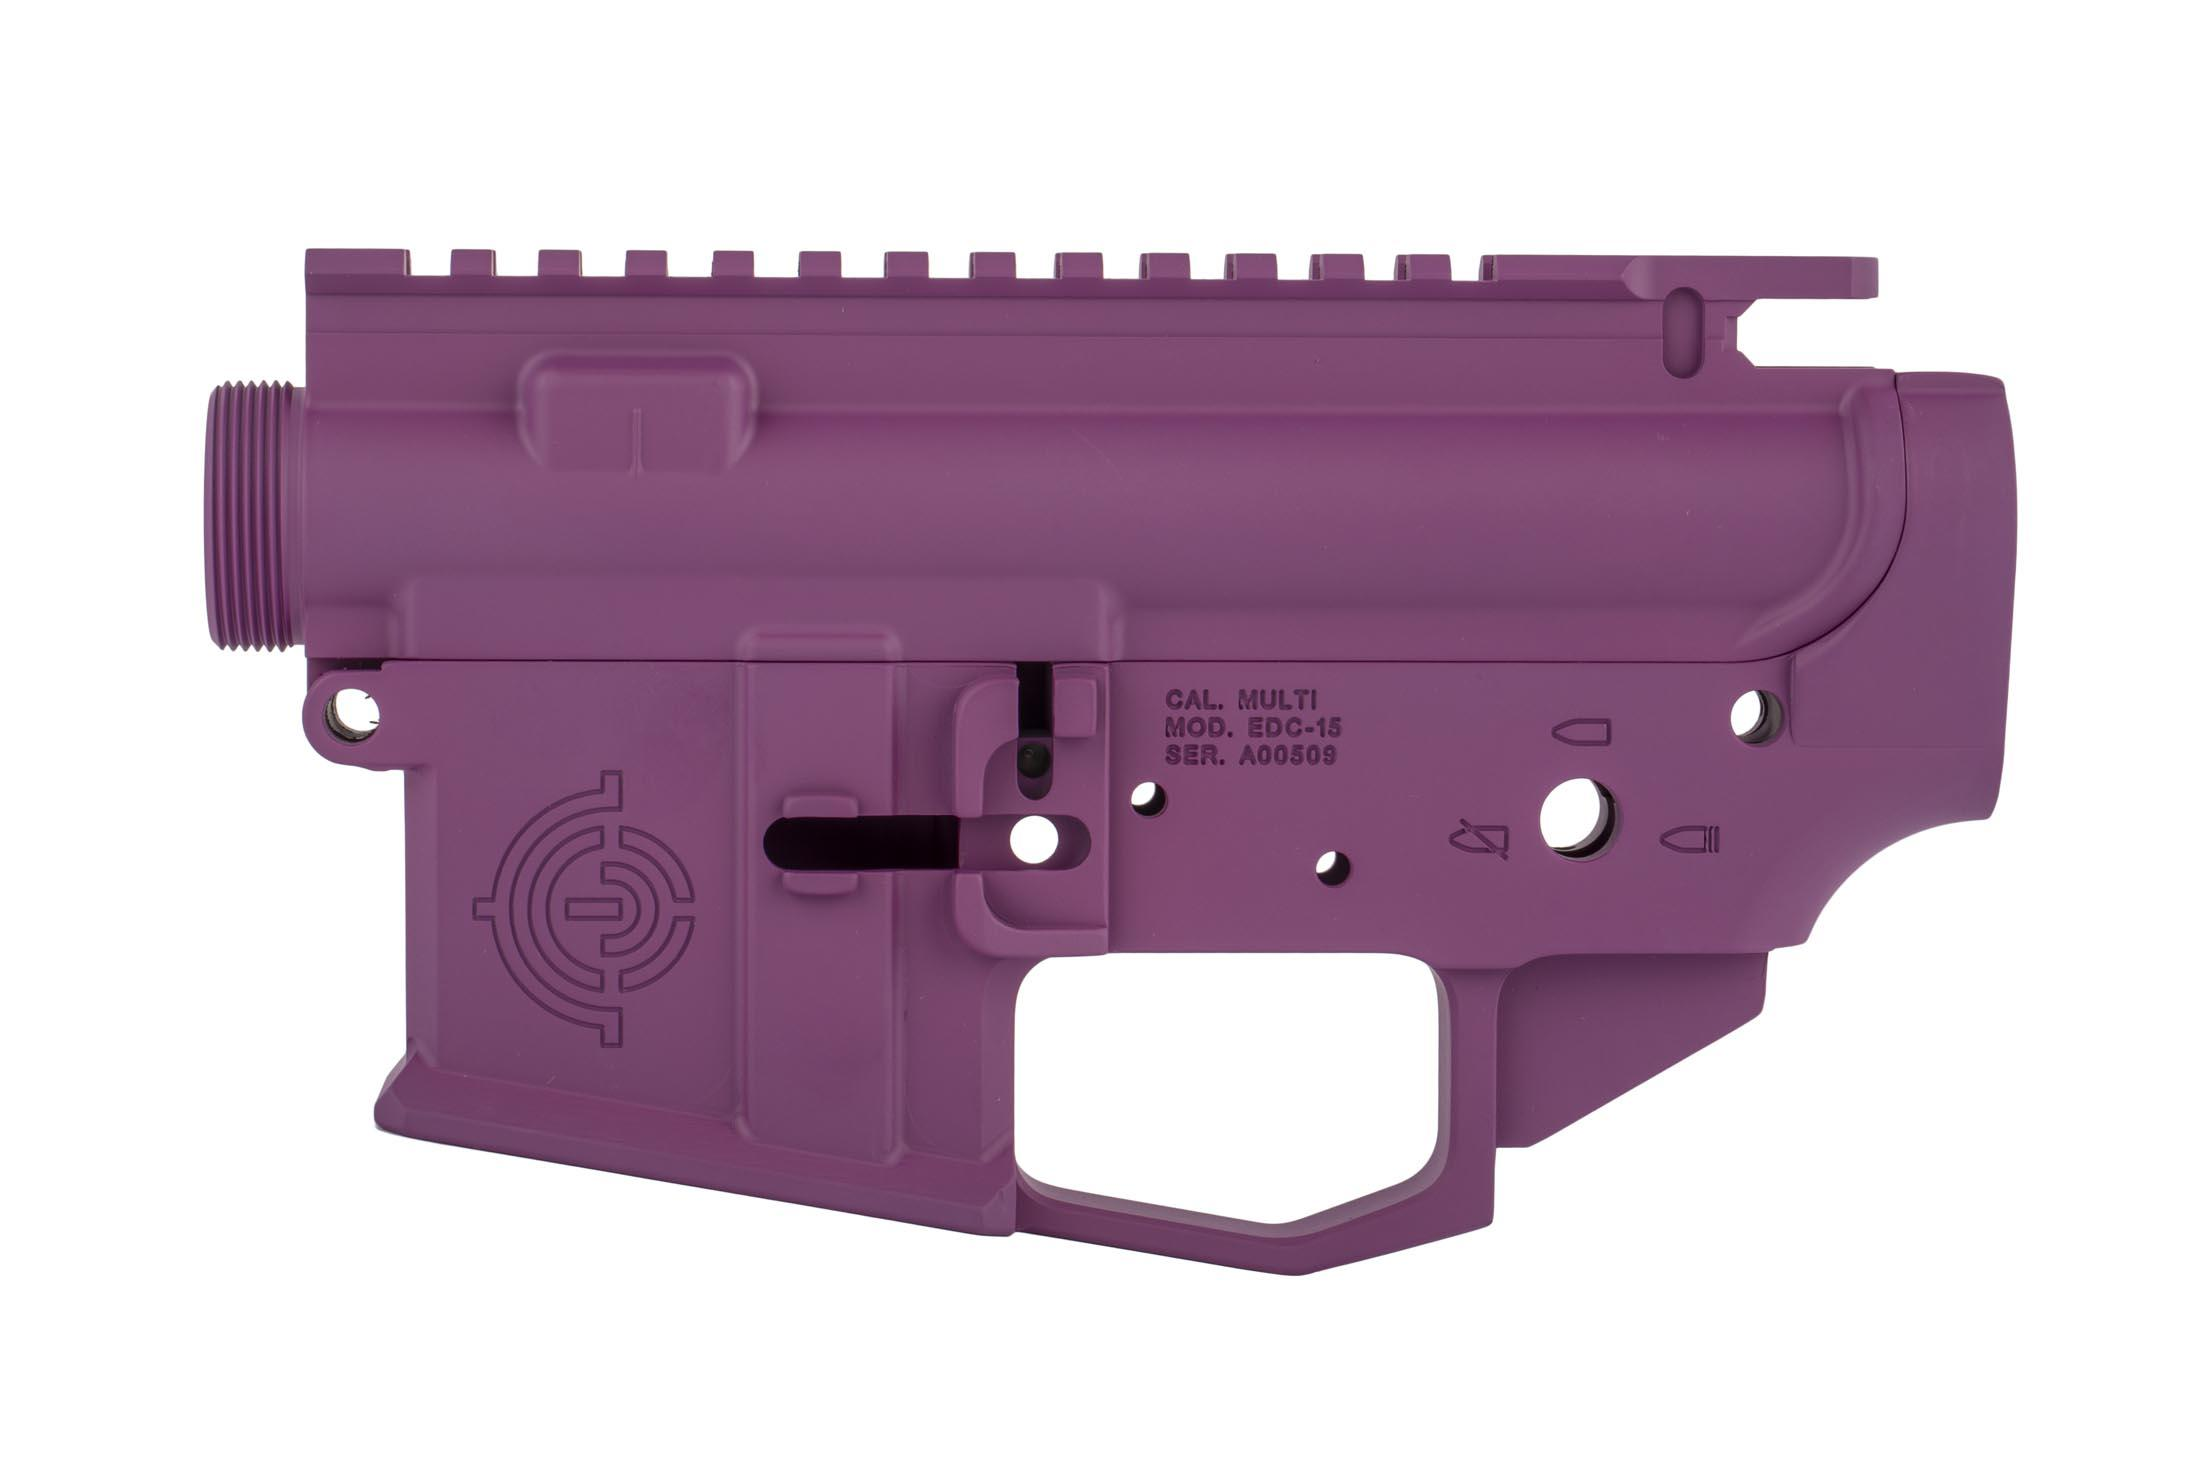 EDC cut AR-15 receiver set from EDC Tactical with purple finish has an integral winterized trigger guard compatible with gloves.